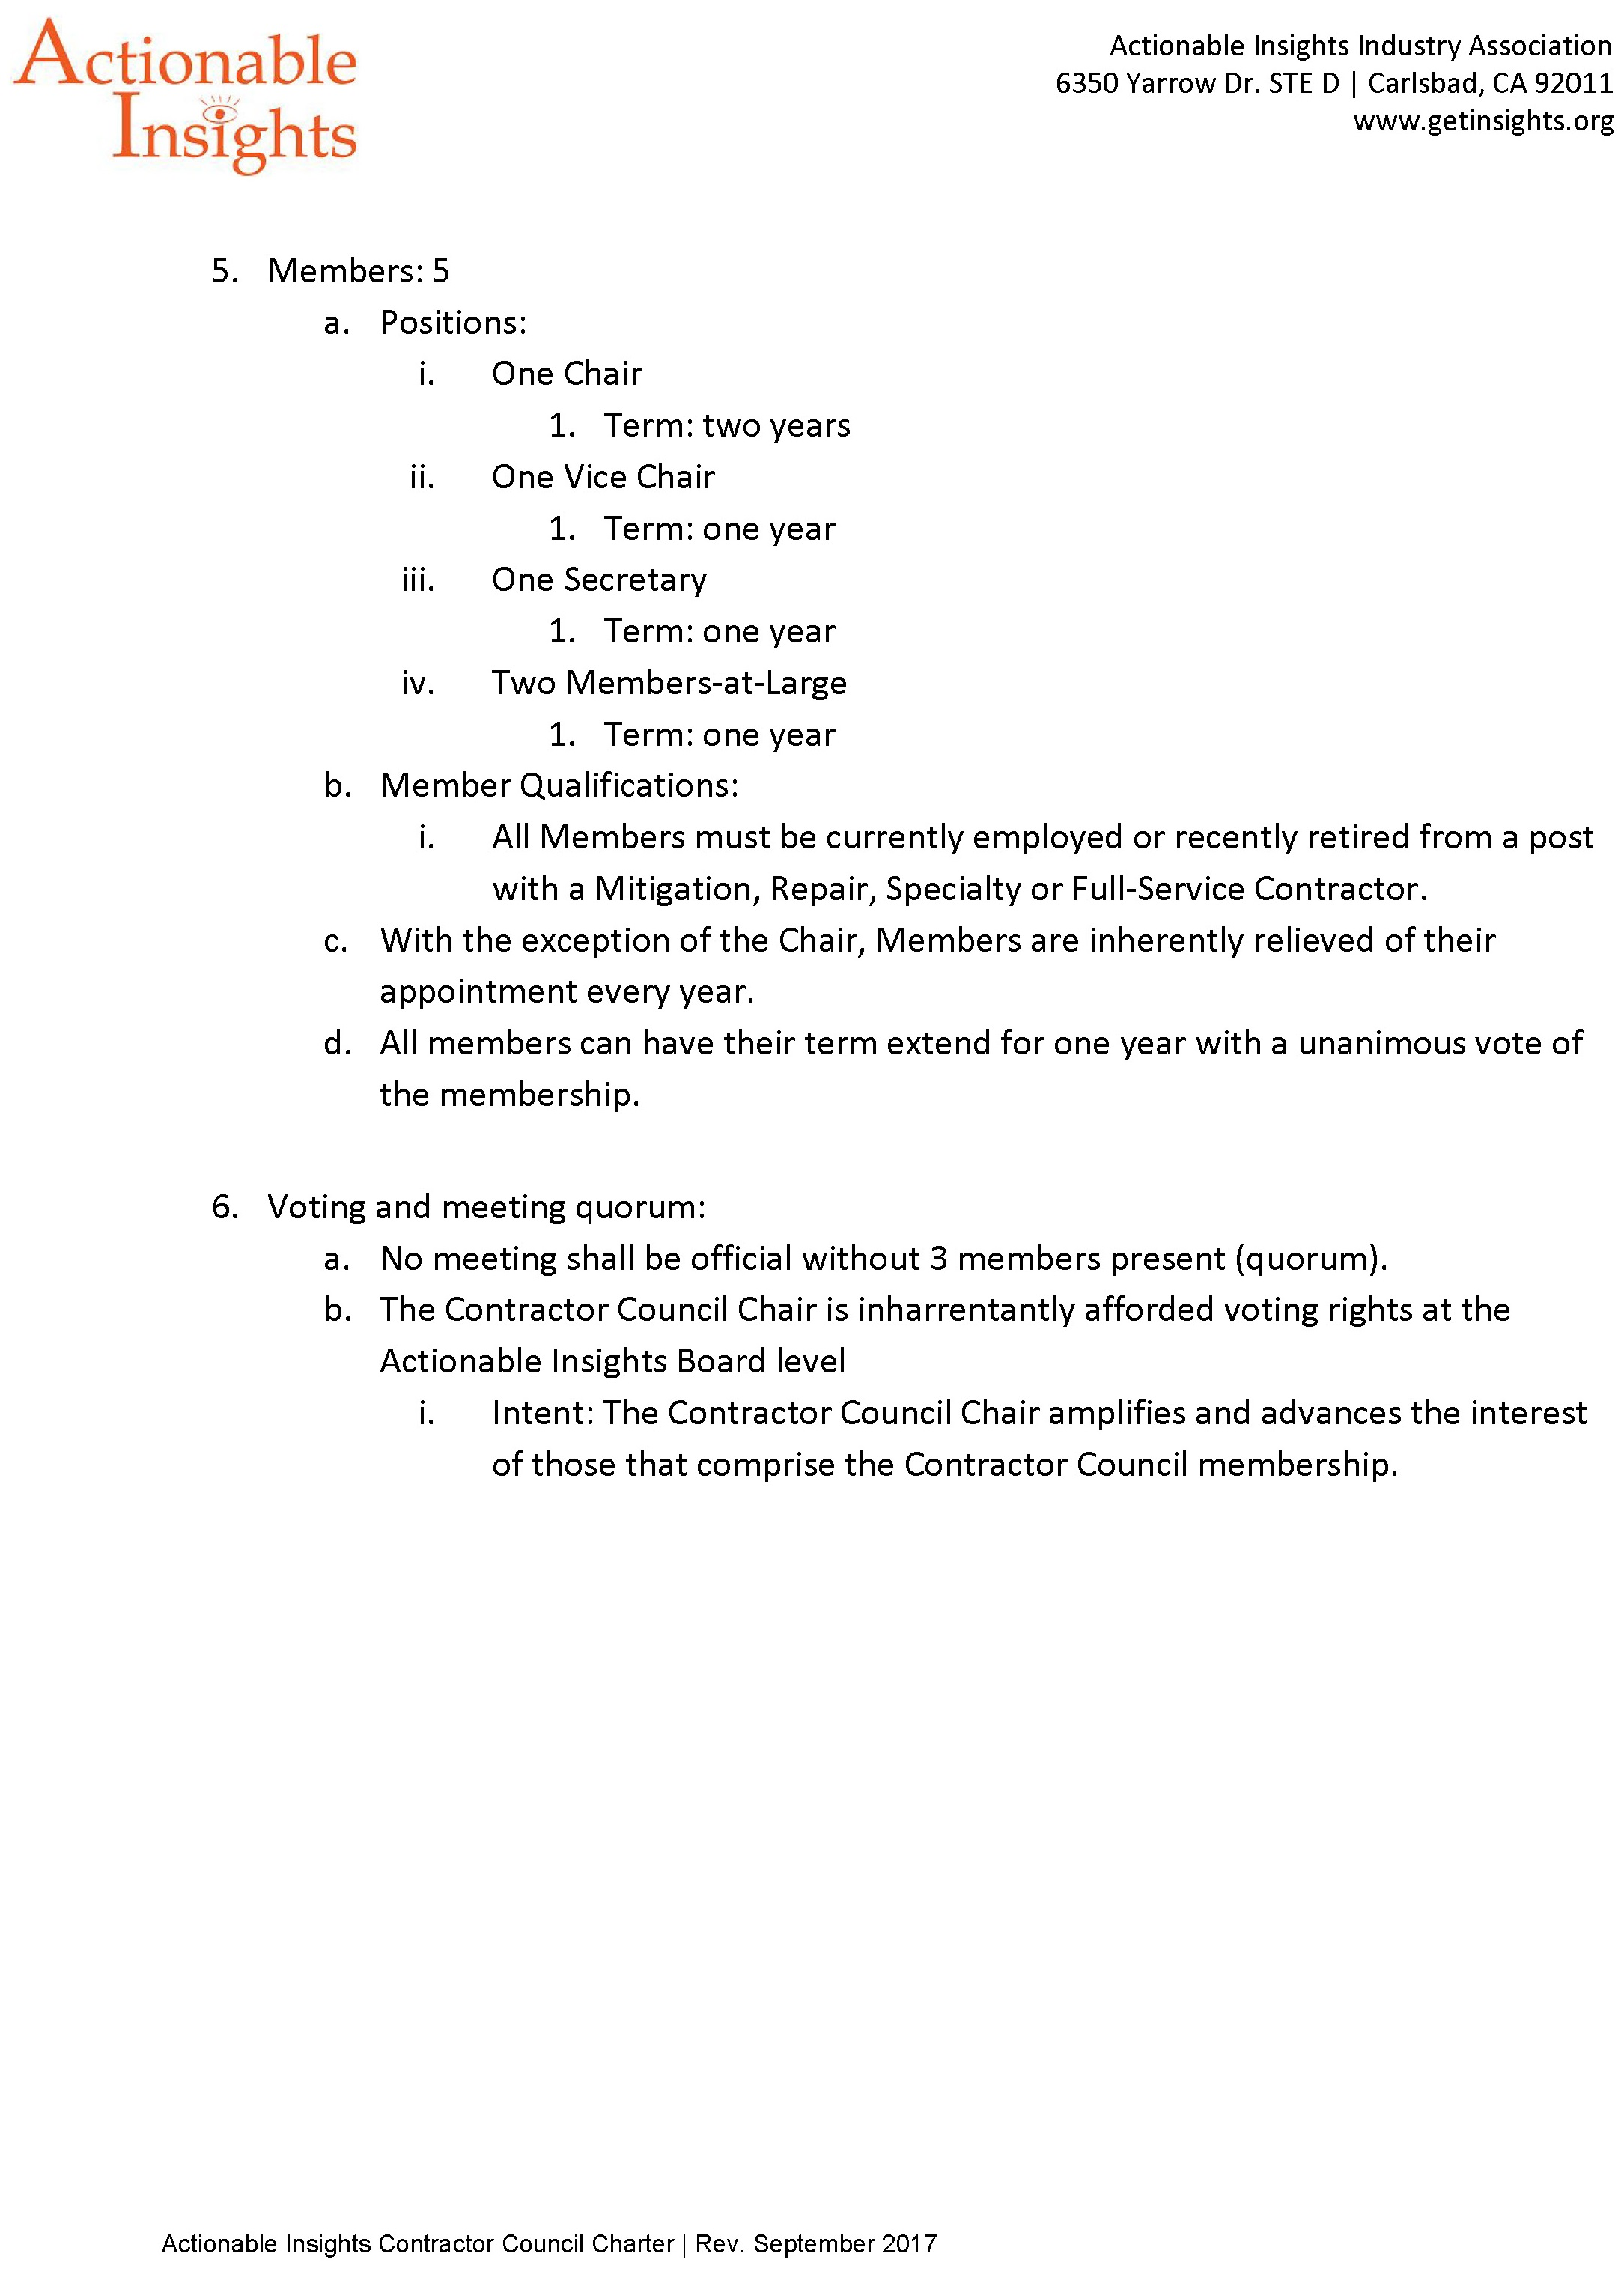 Contractor Council Charter (page 2 of 2)